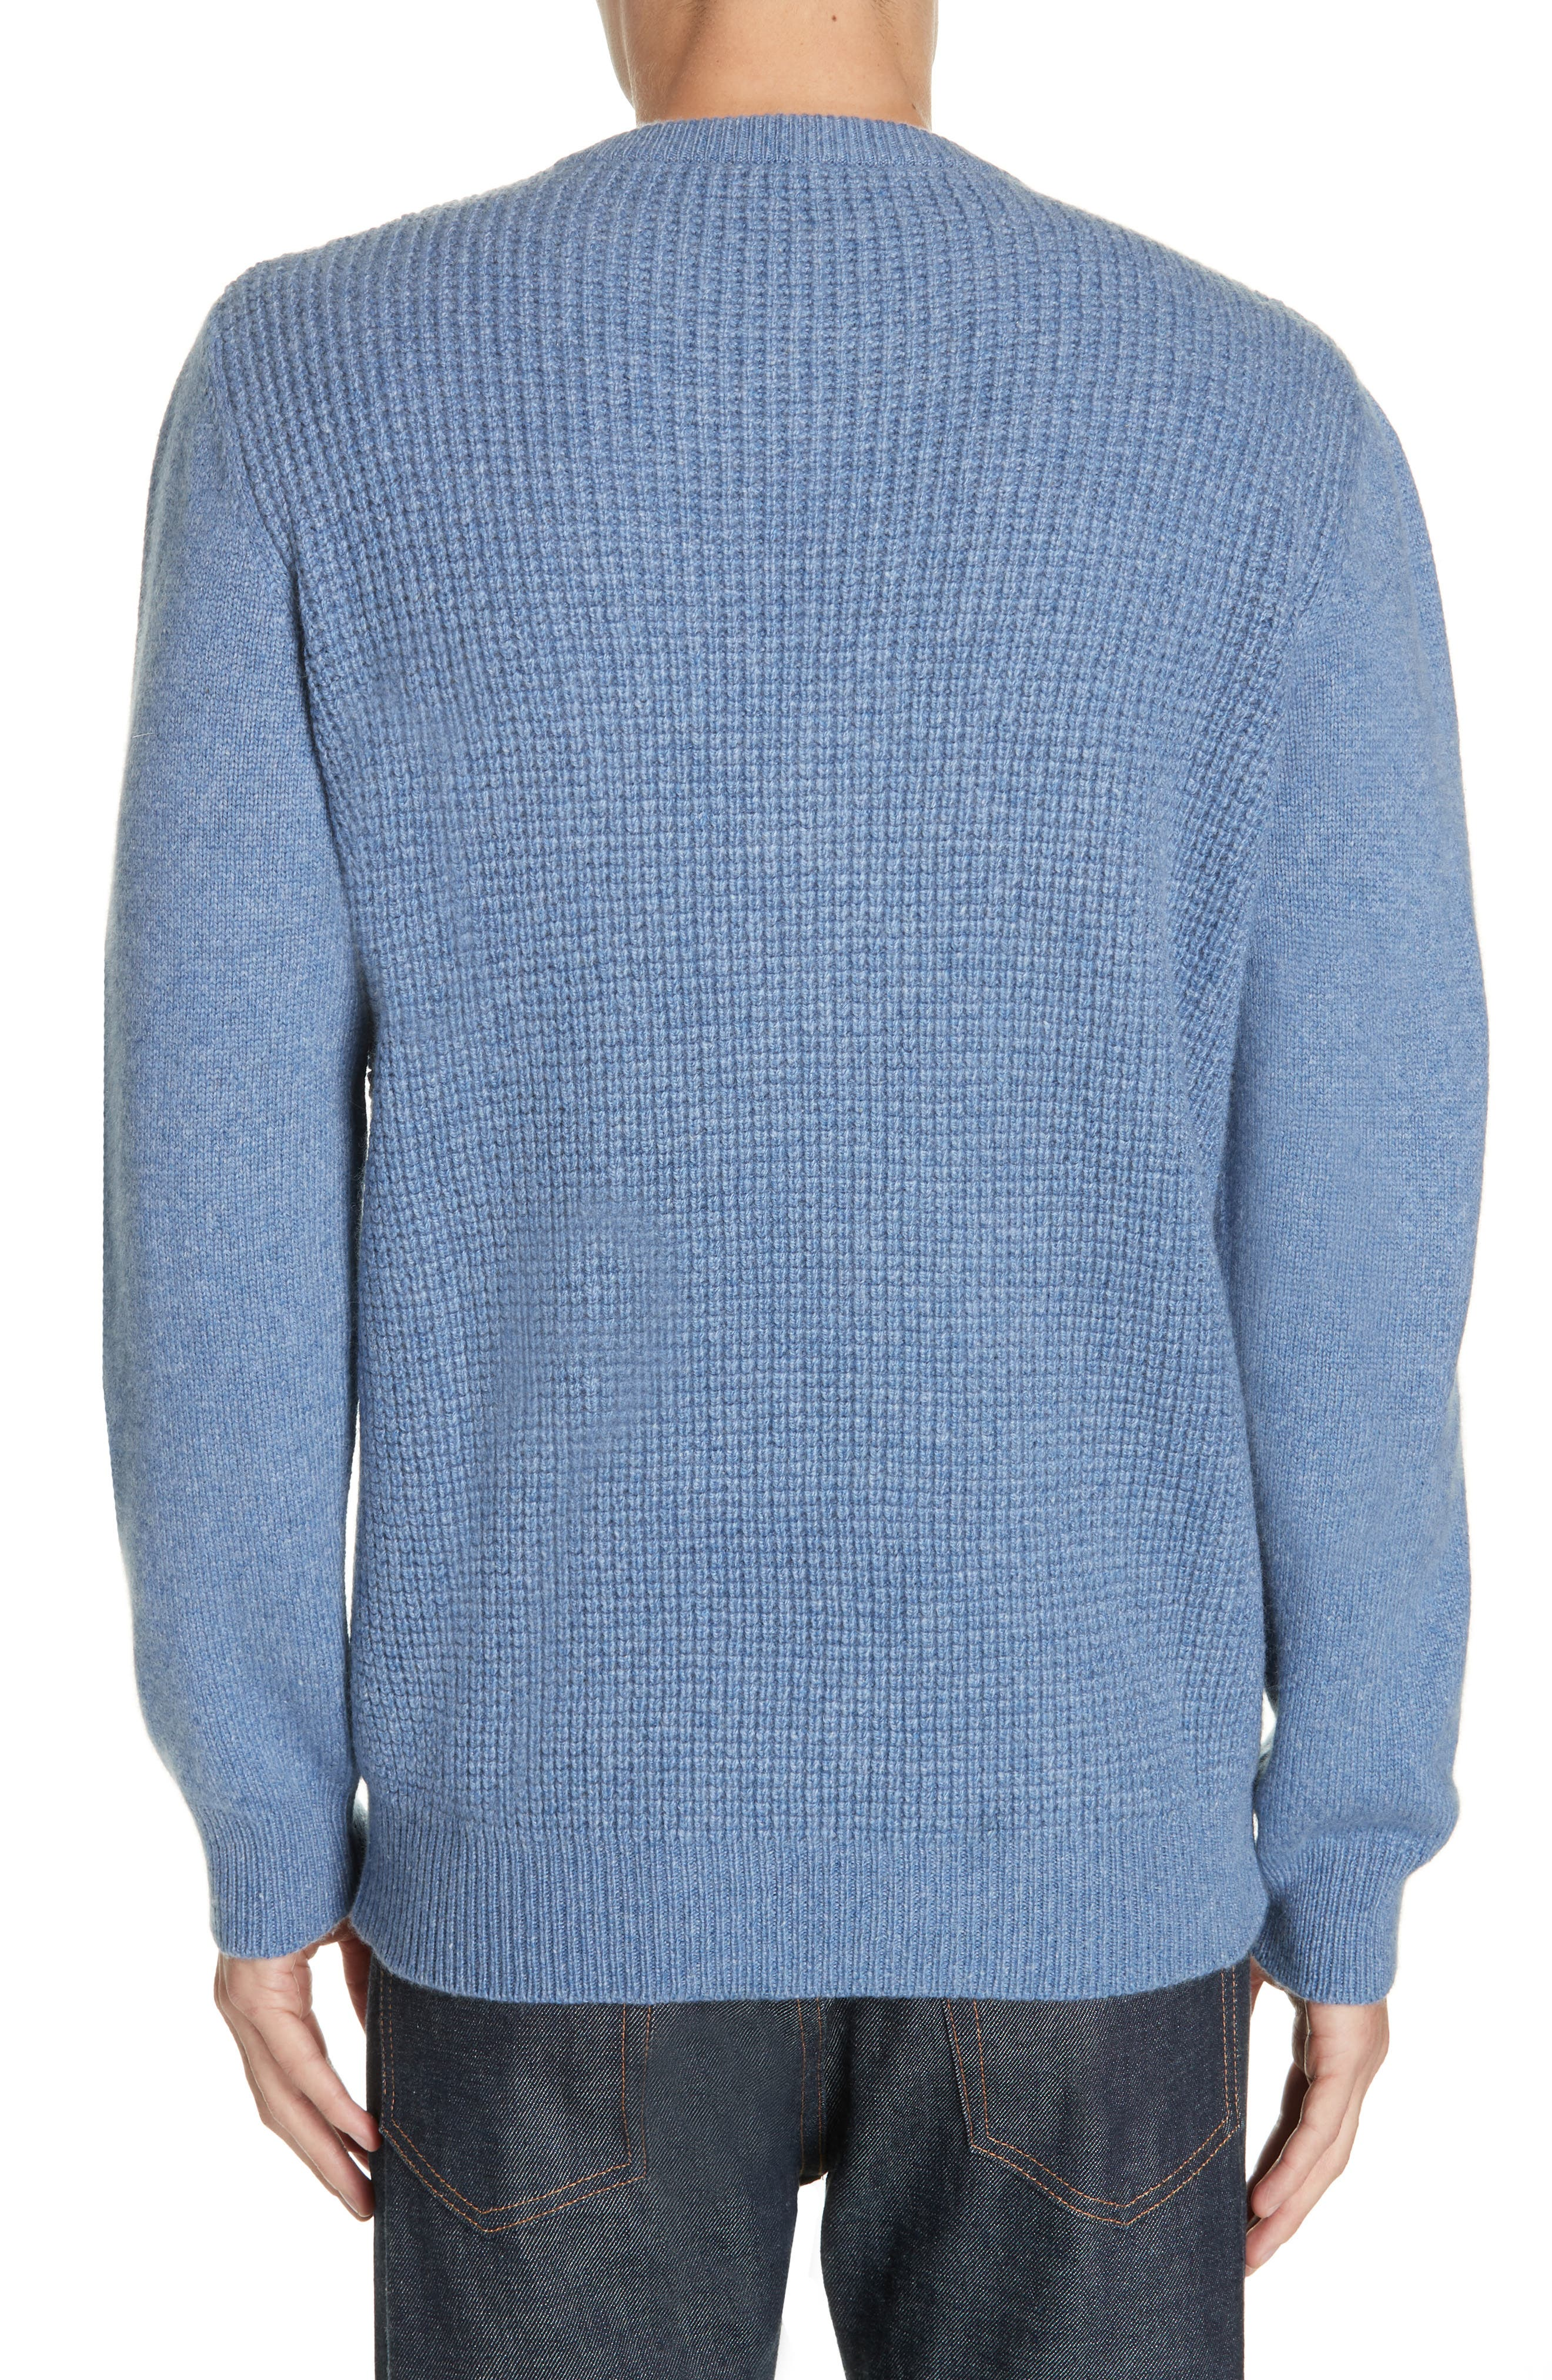 Waffle Knit Cashmere Crewneck Sweater,                             Alternate thumbnail 2, color,                             LIGHT BLUE